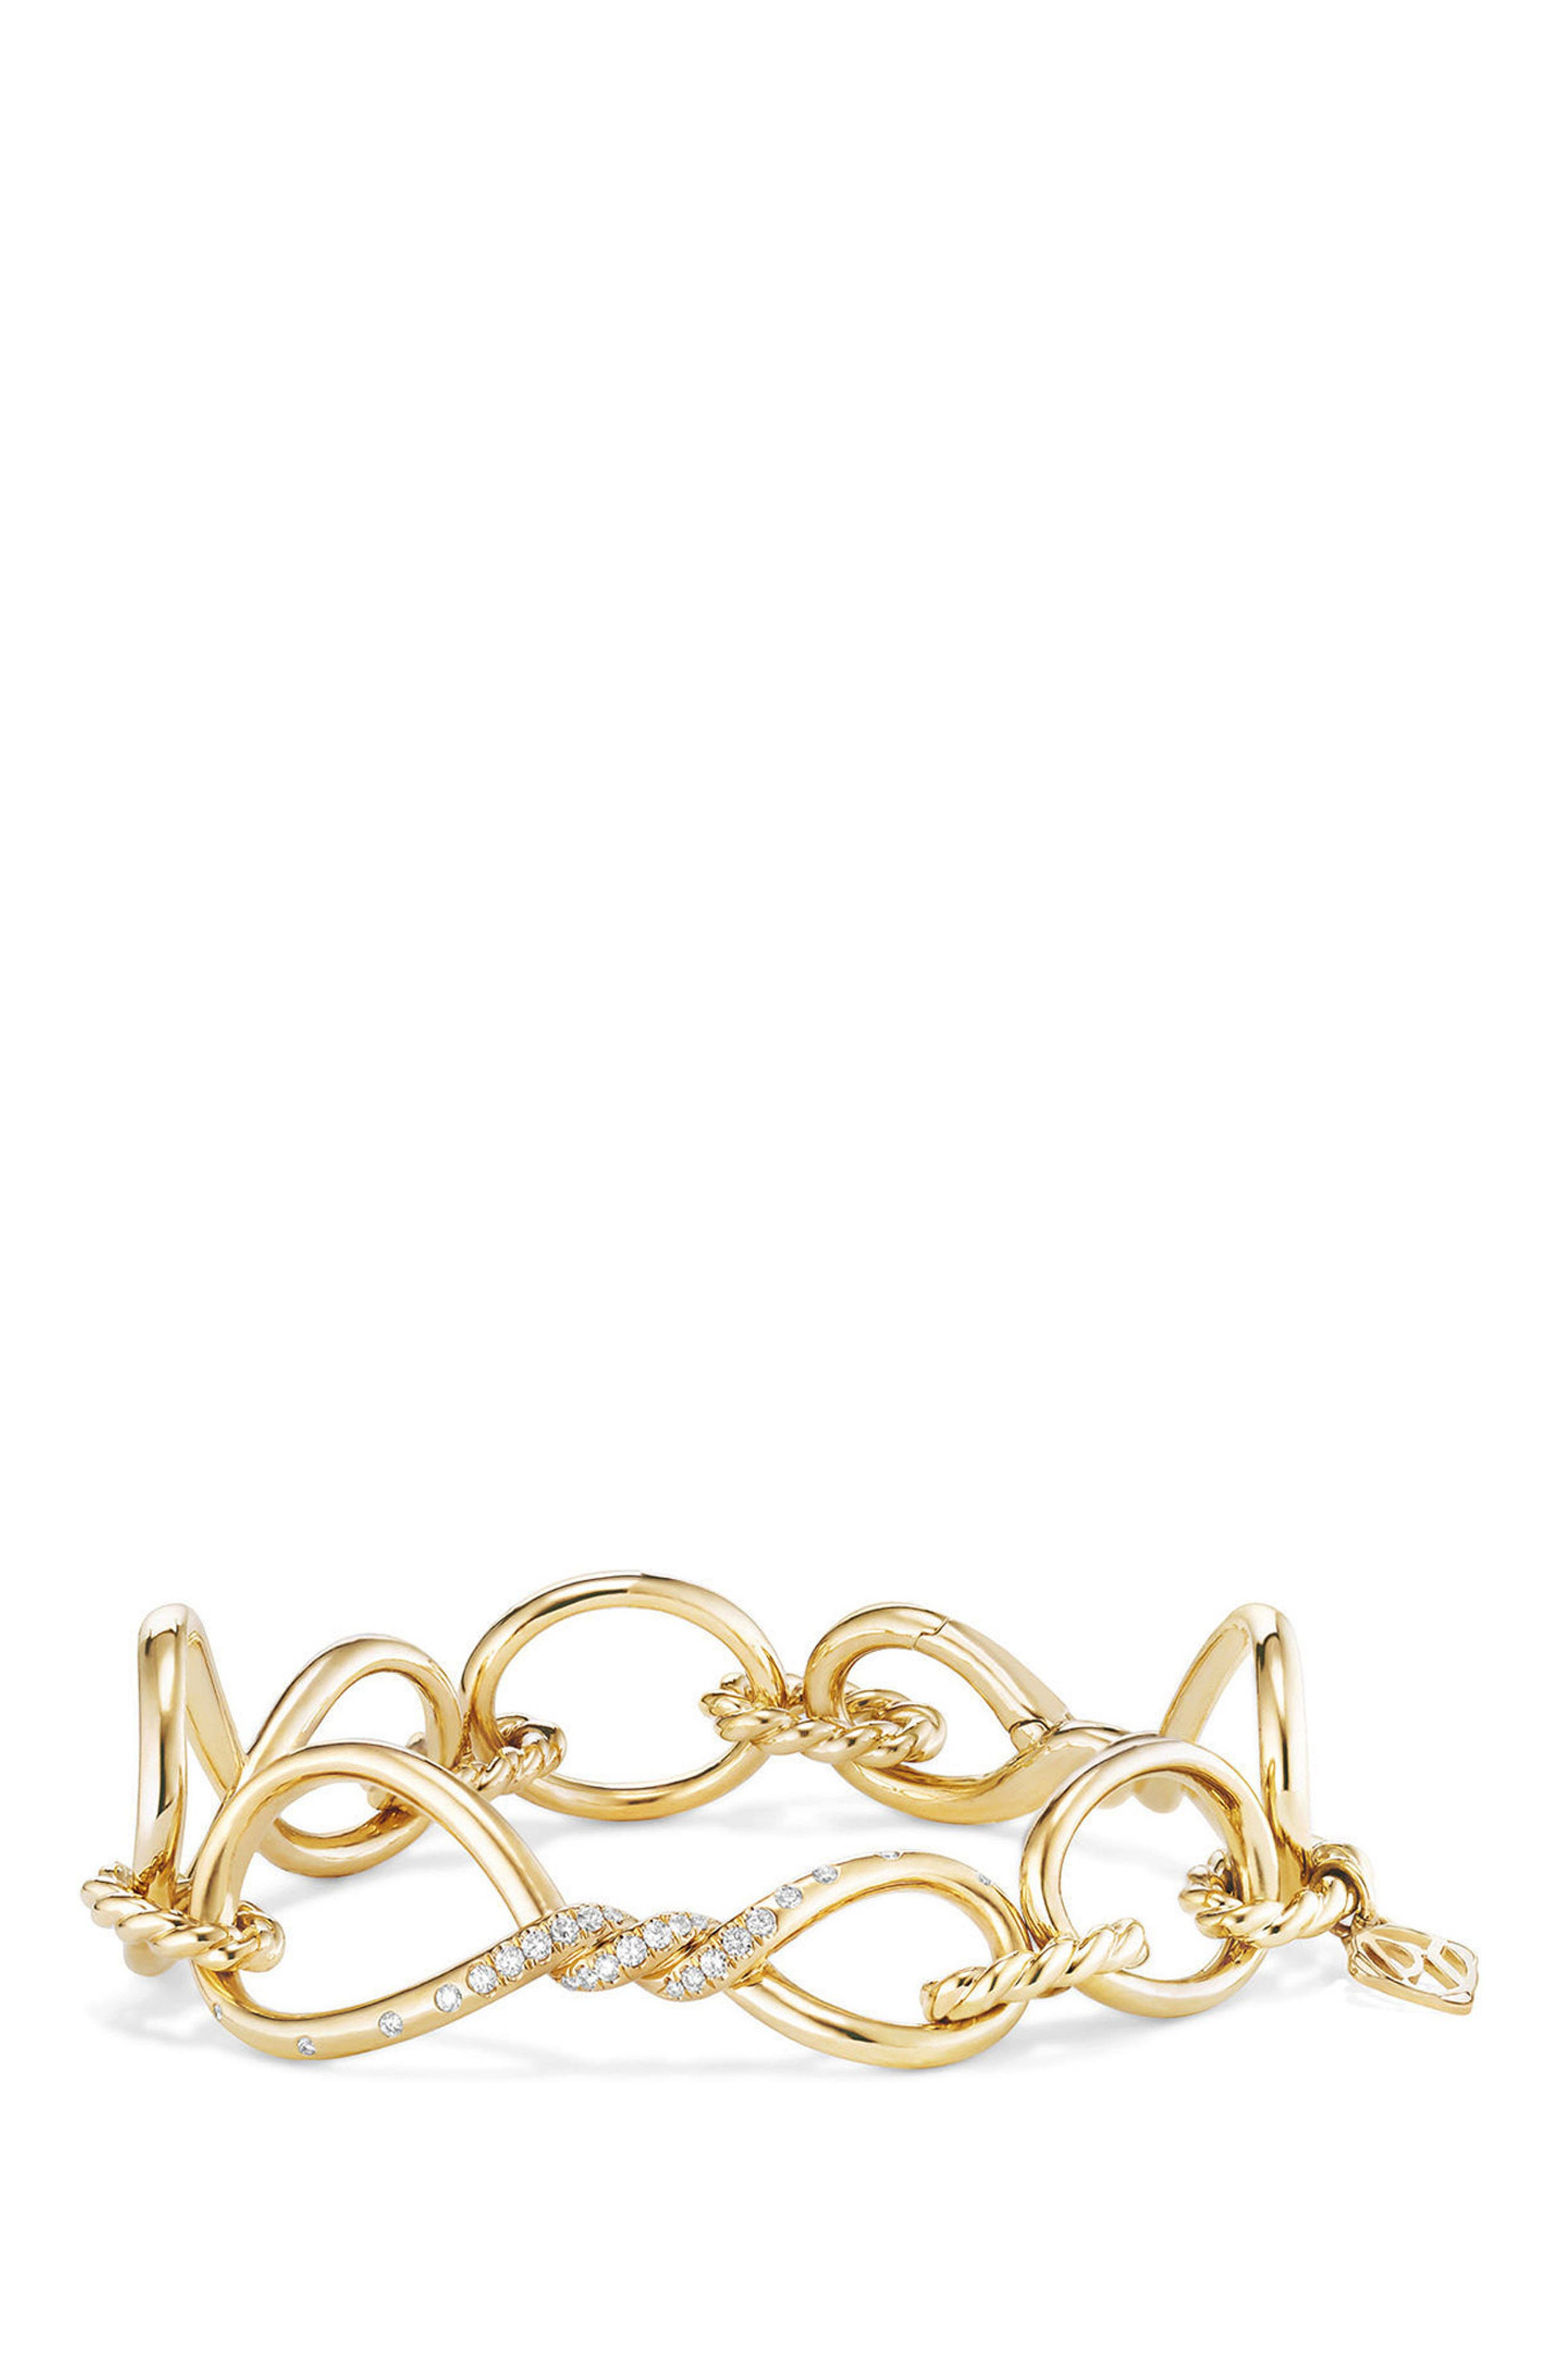 Continuance Chain Bracelet with Diamonds,                         Main,                         color, Yellow Gold